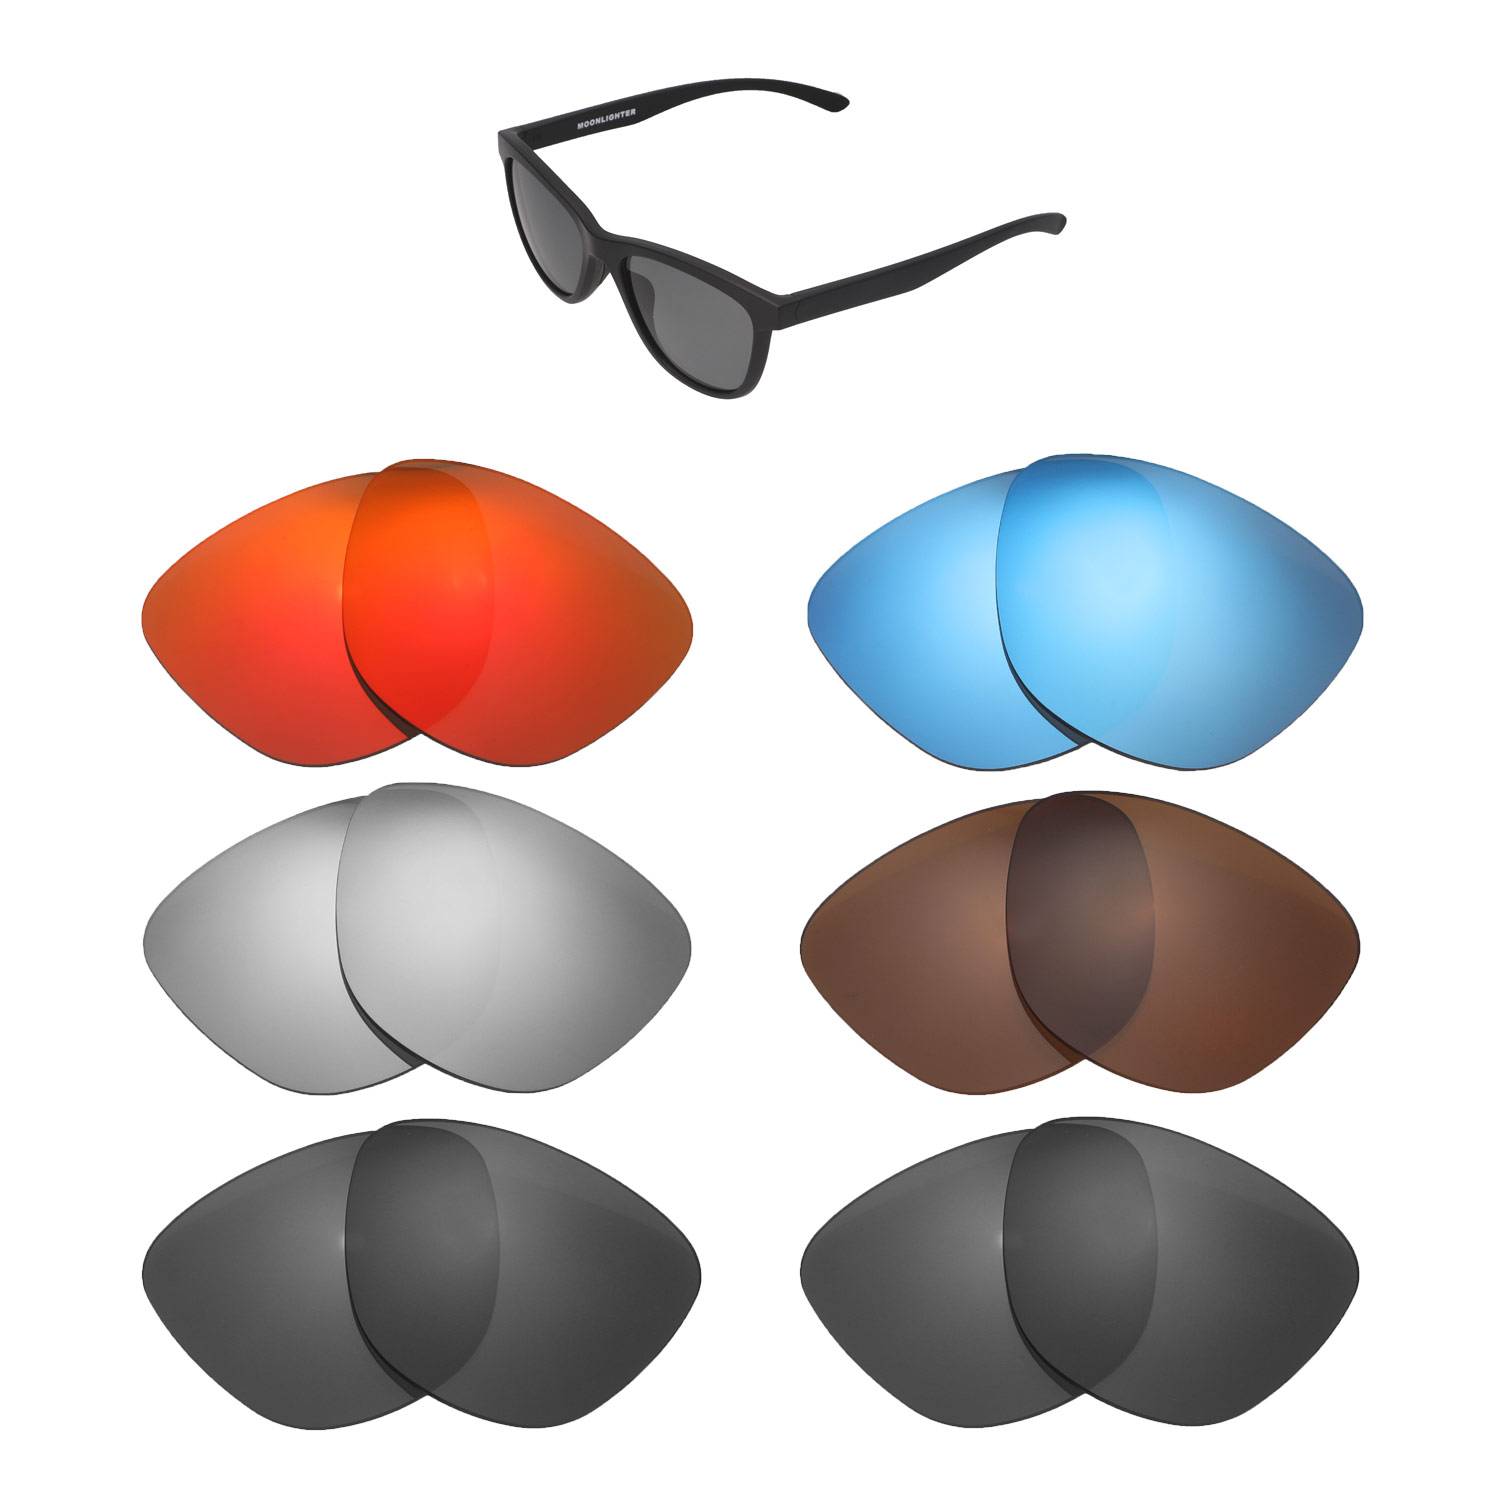 ccd6e7eb0fe1f Details about Walleva Replacement Lenses for Oakley Moonlighter Sunglasses  - Multiple Options